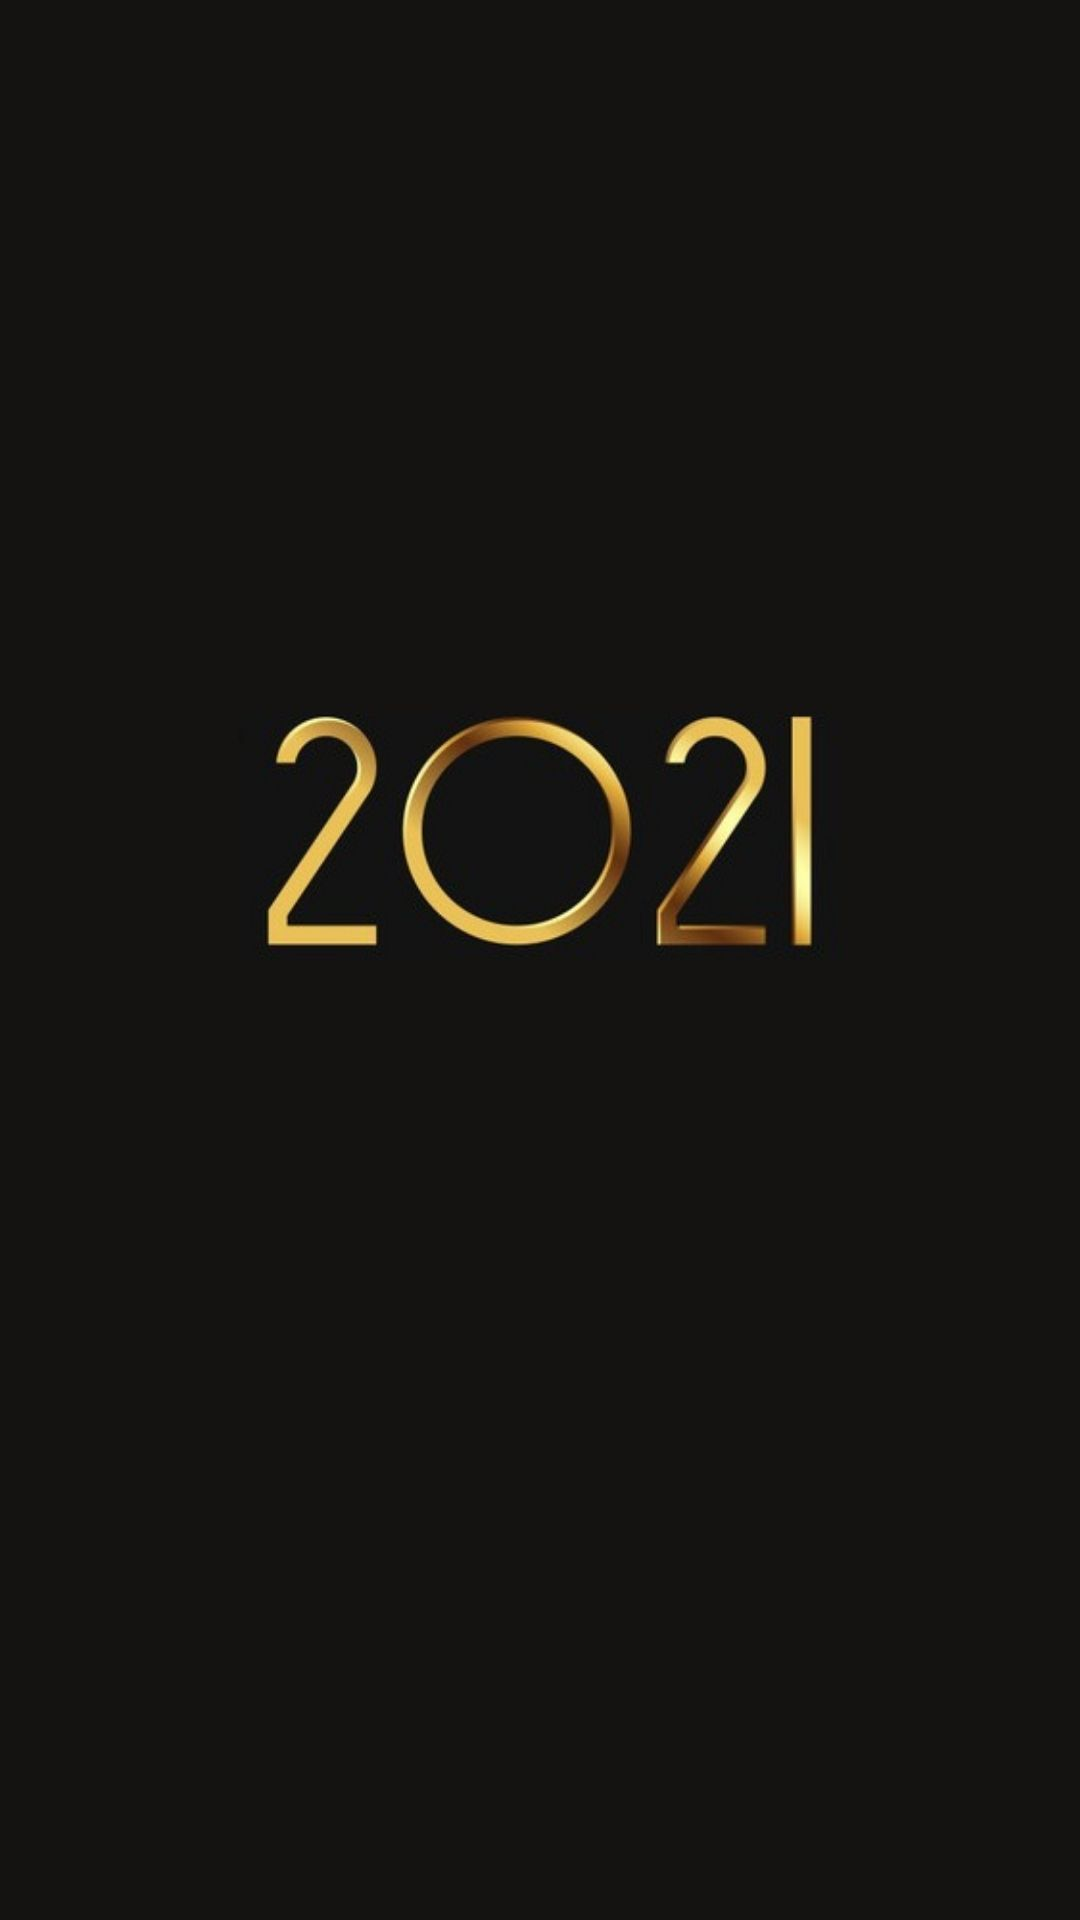 2021 Backgrounds New Years Eve Iphone Wallpapers Hd Free Happy New Year Images New Year Images Image Quotes